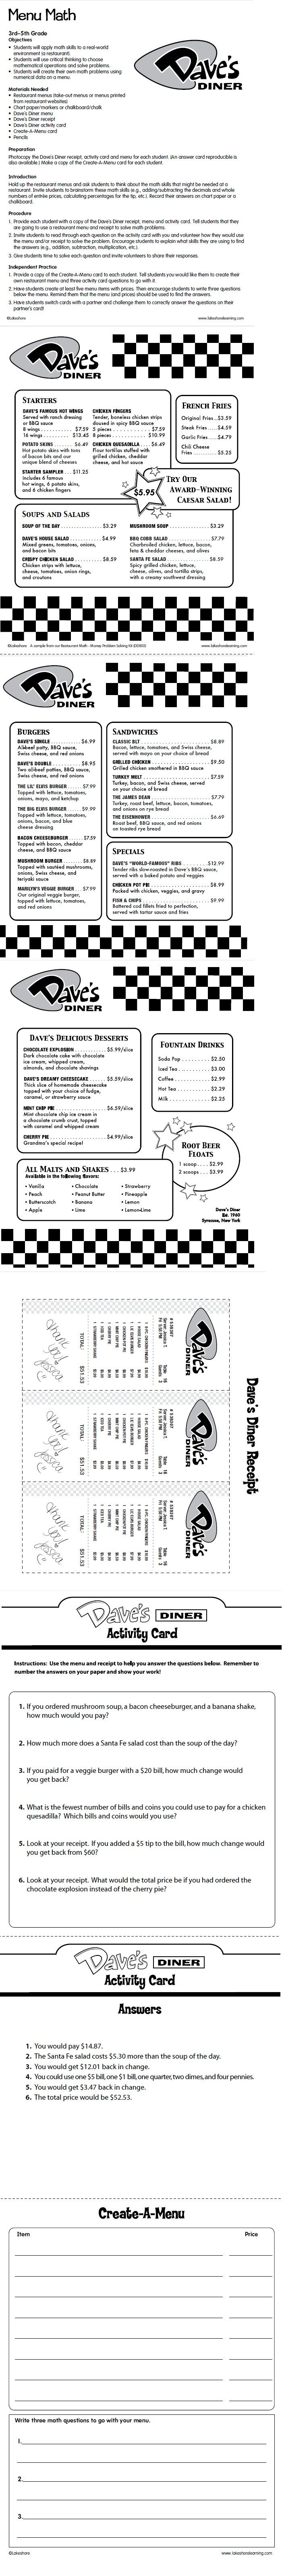 Menu Math Lesson Plan from Lakeshore Learning